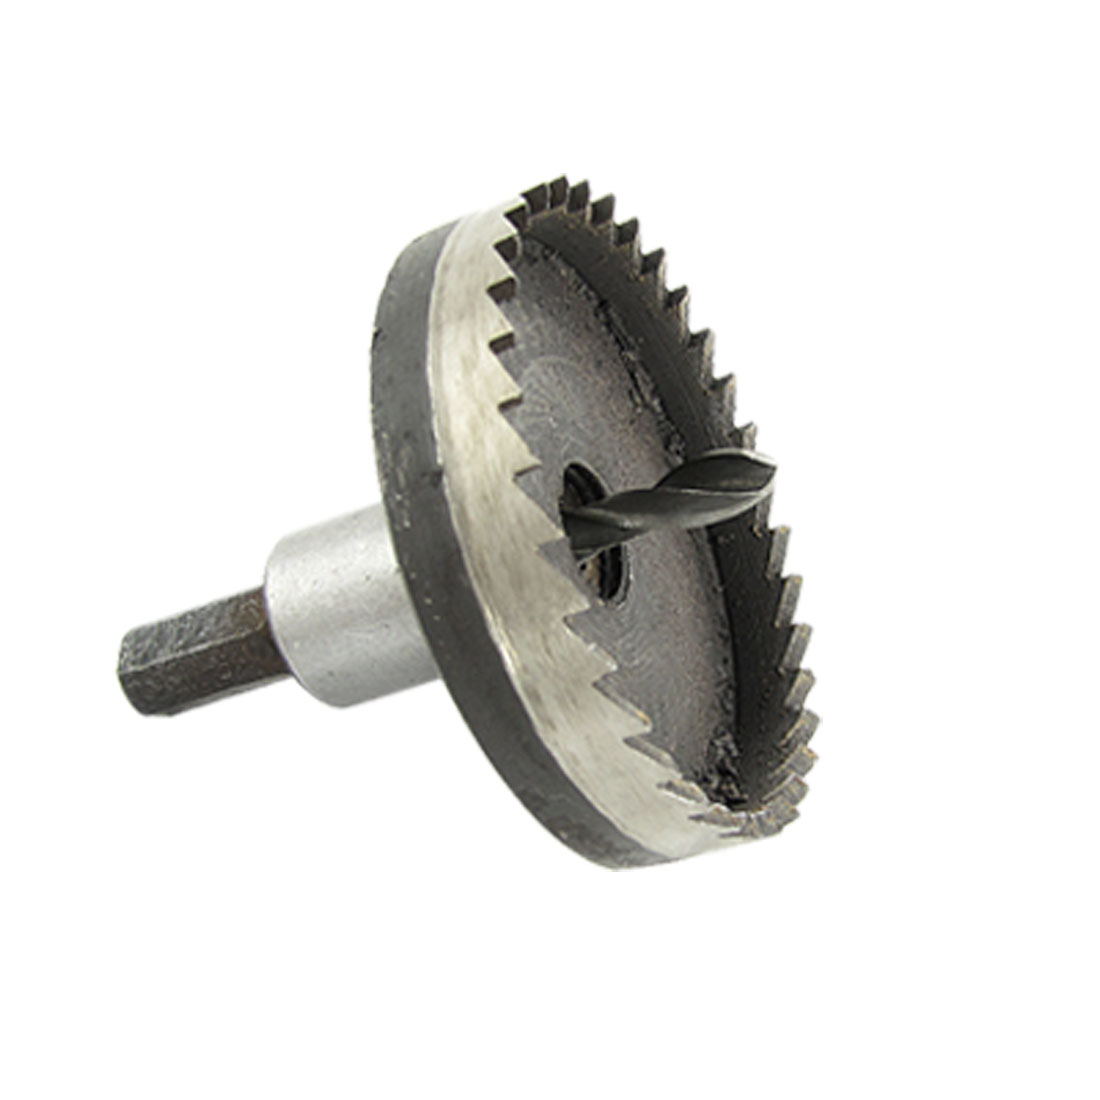 6mm Pilot Drill Diameter 60mm HSS Metal Drilling Hole Saw